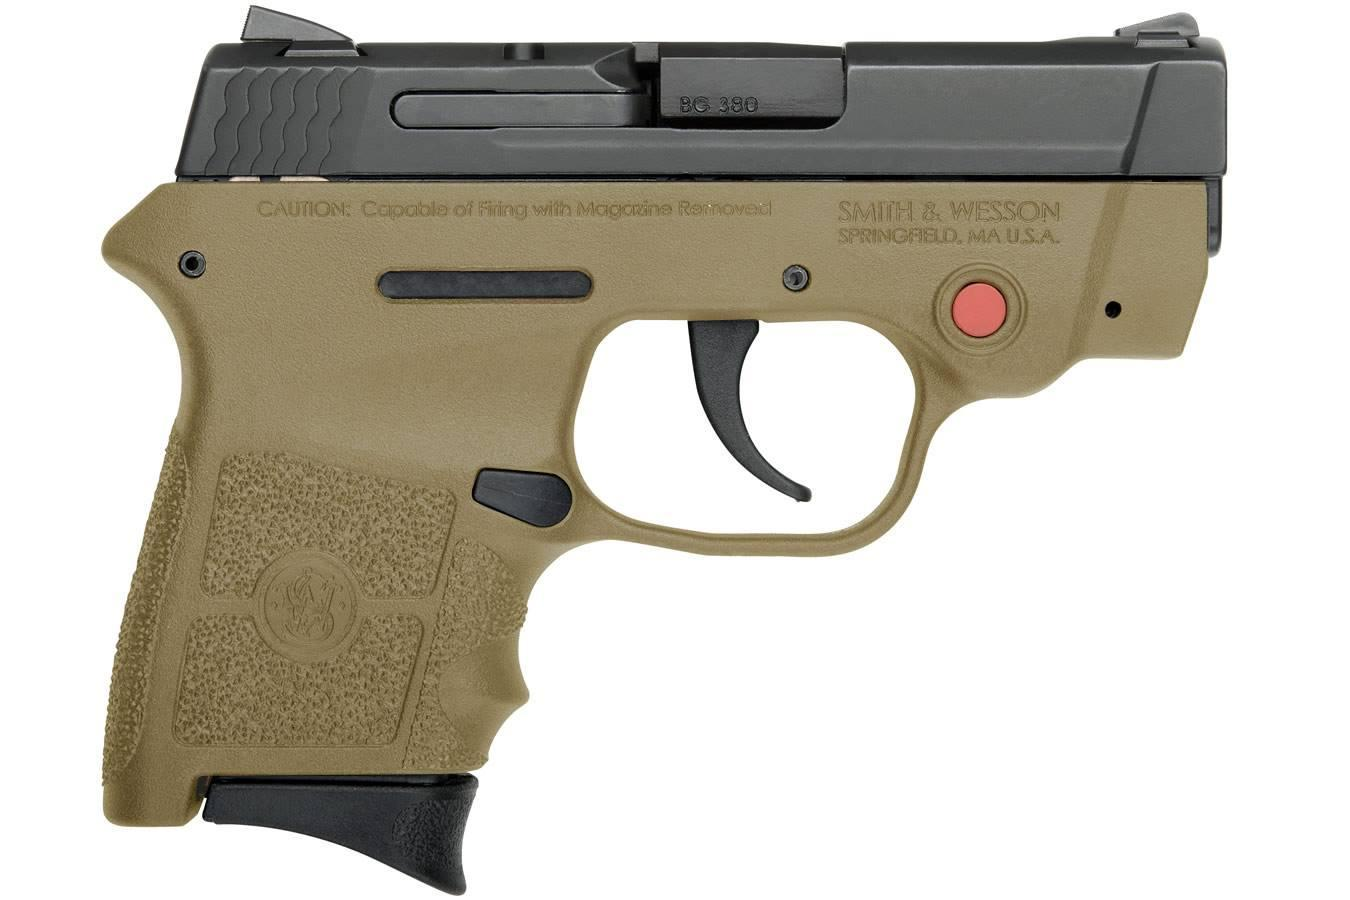 Smith & Wesson M&P M&P Bodyguard 380-img-3